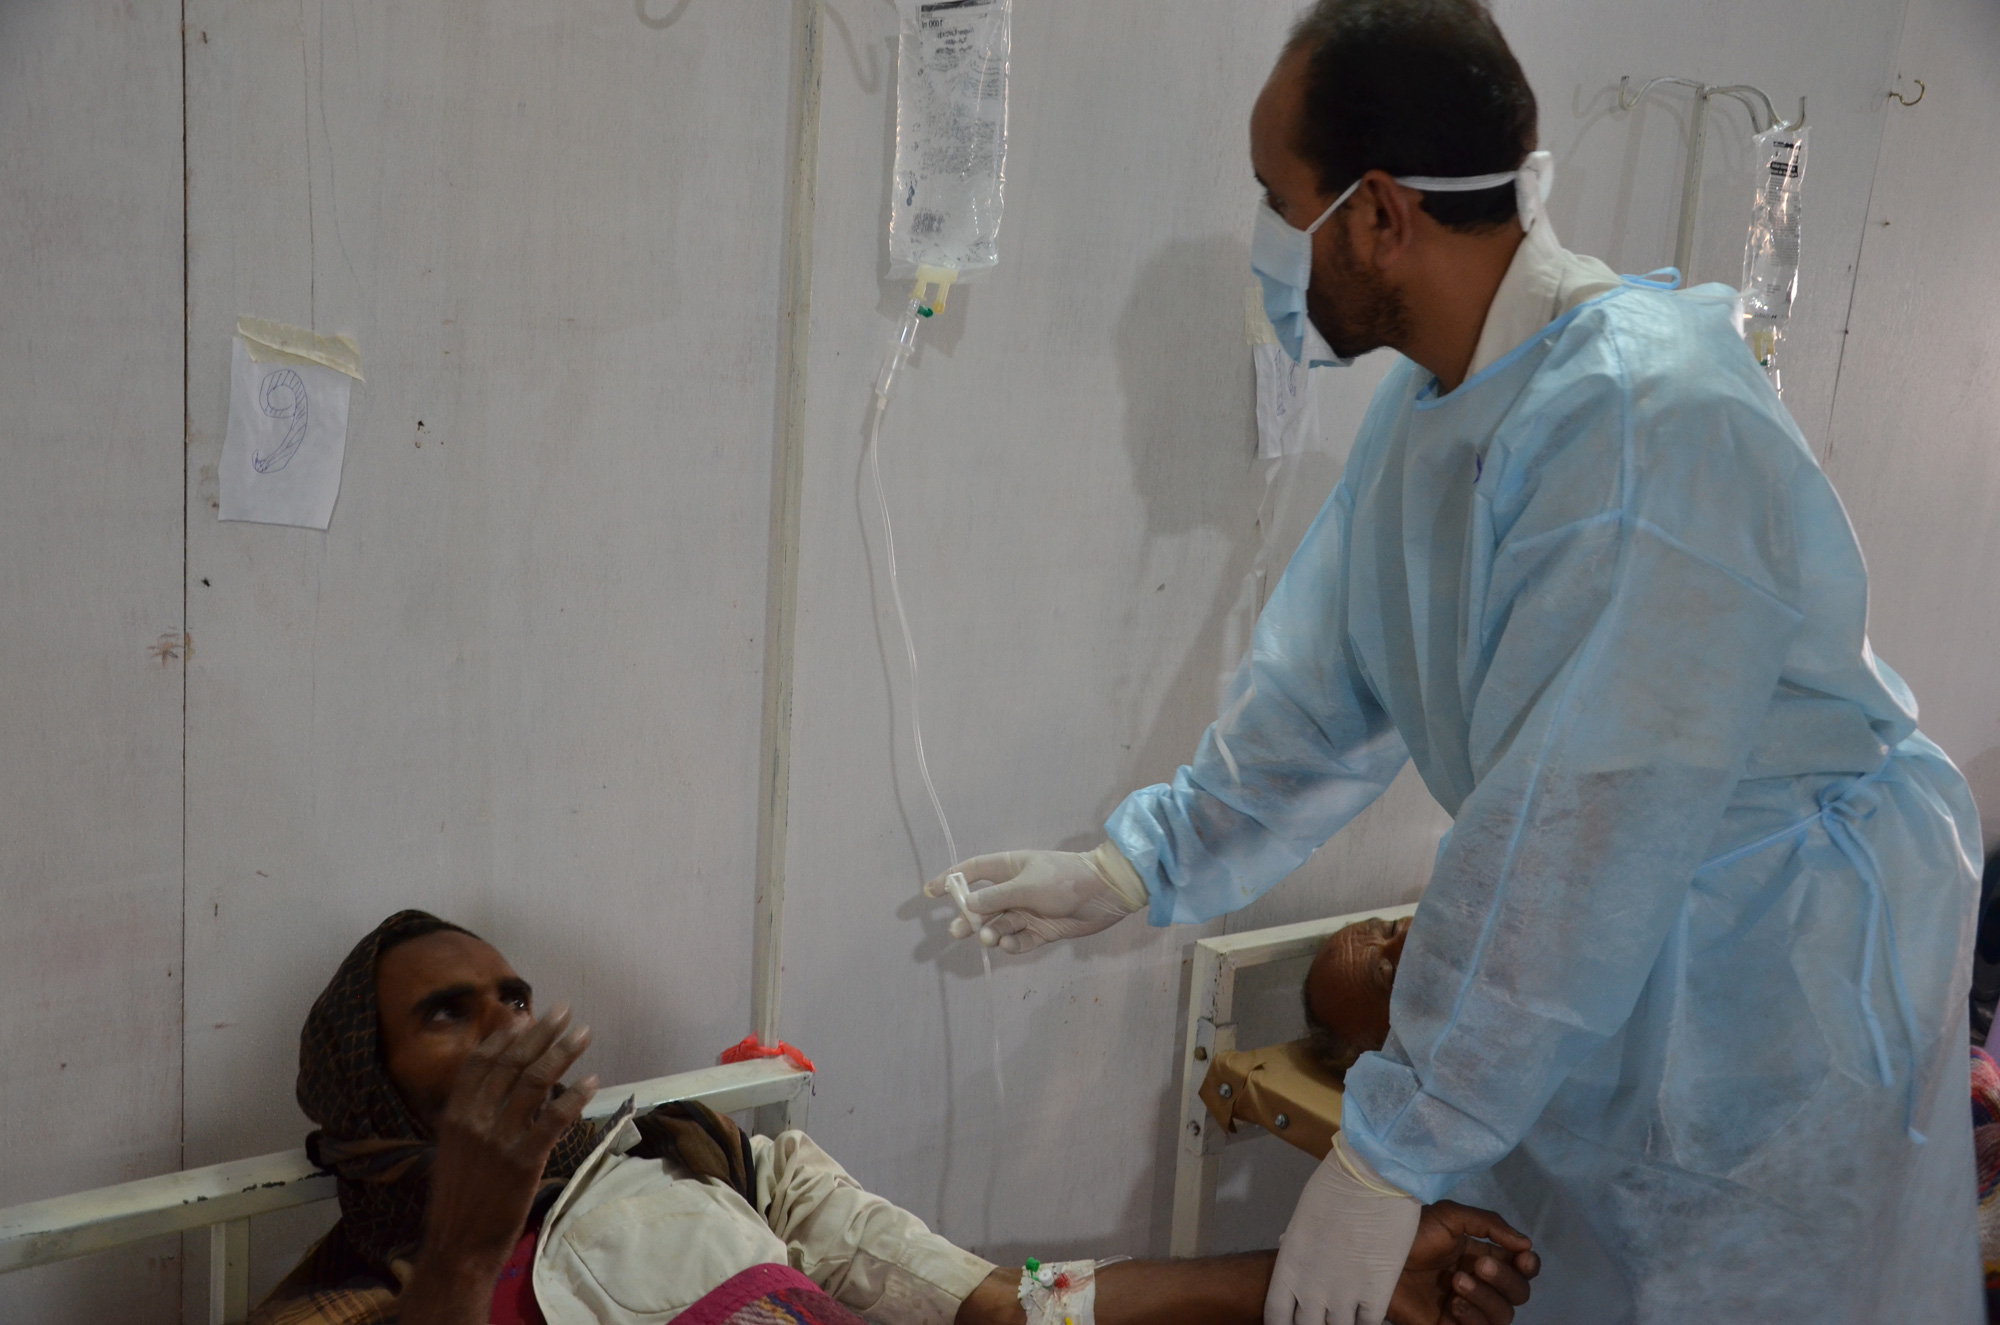 The Khamer MSF cholera treatment centre has alone treated more than 1,200 patients in less than two weeks during May.